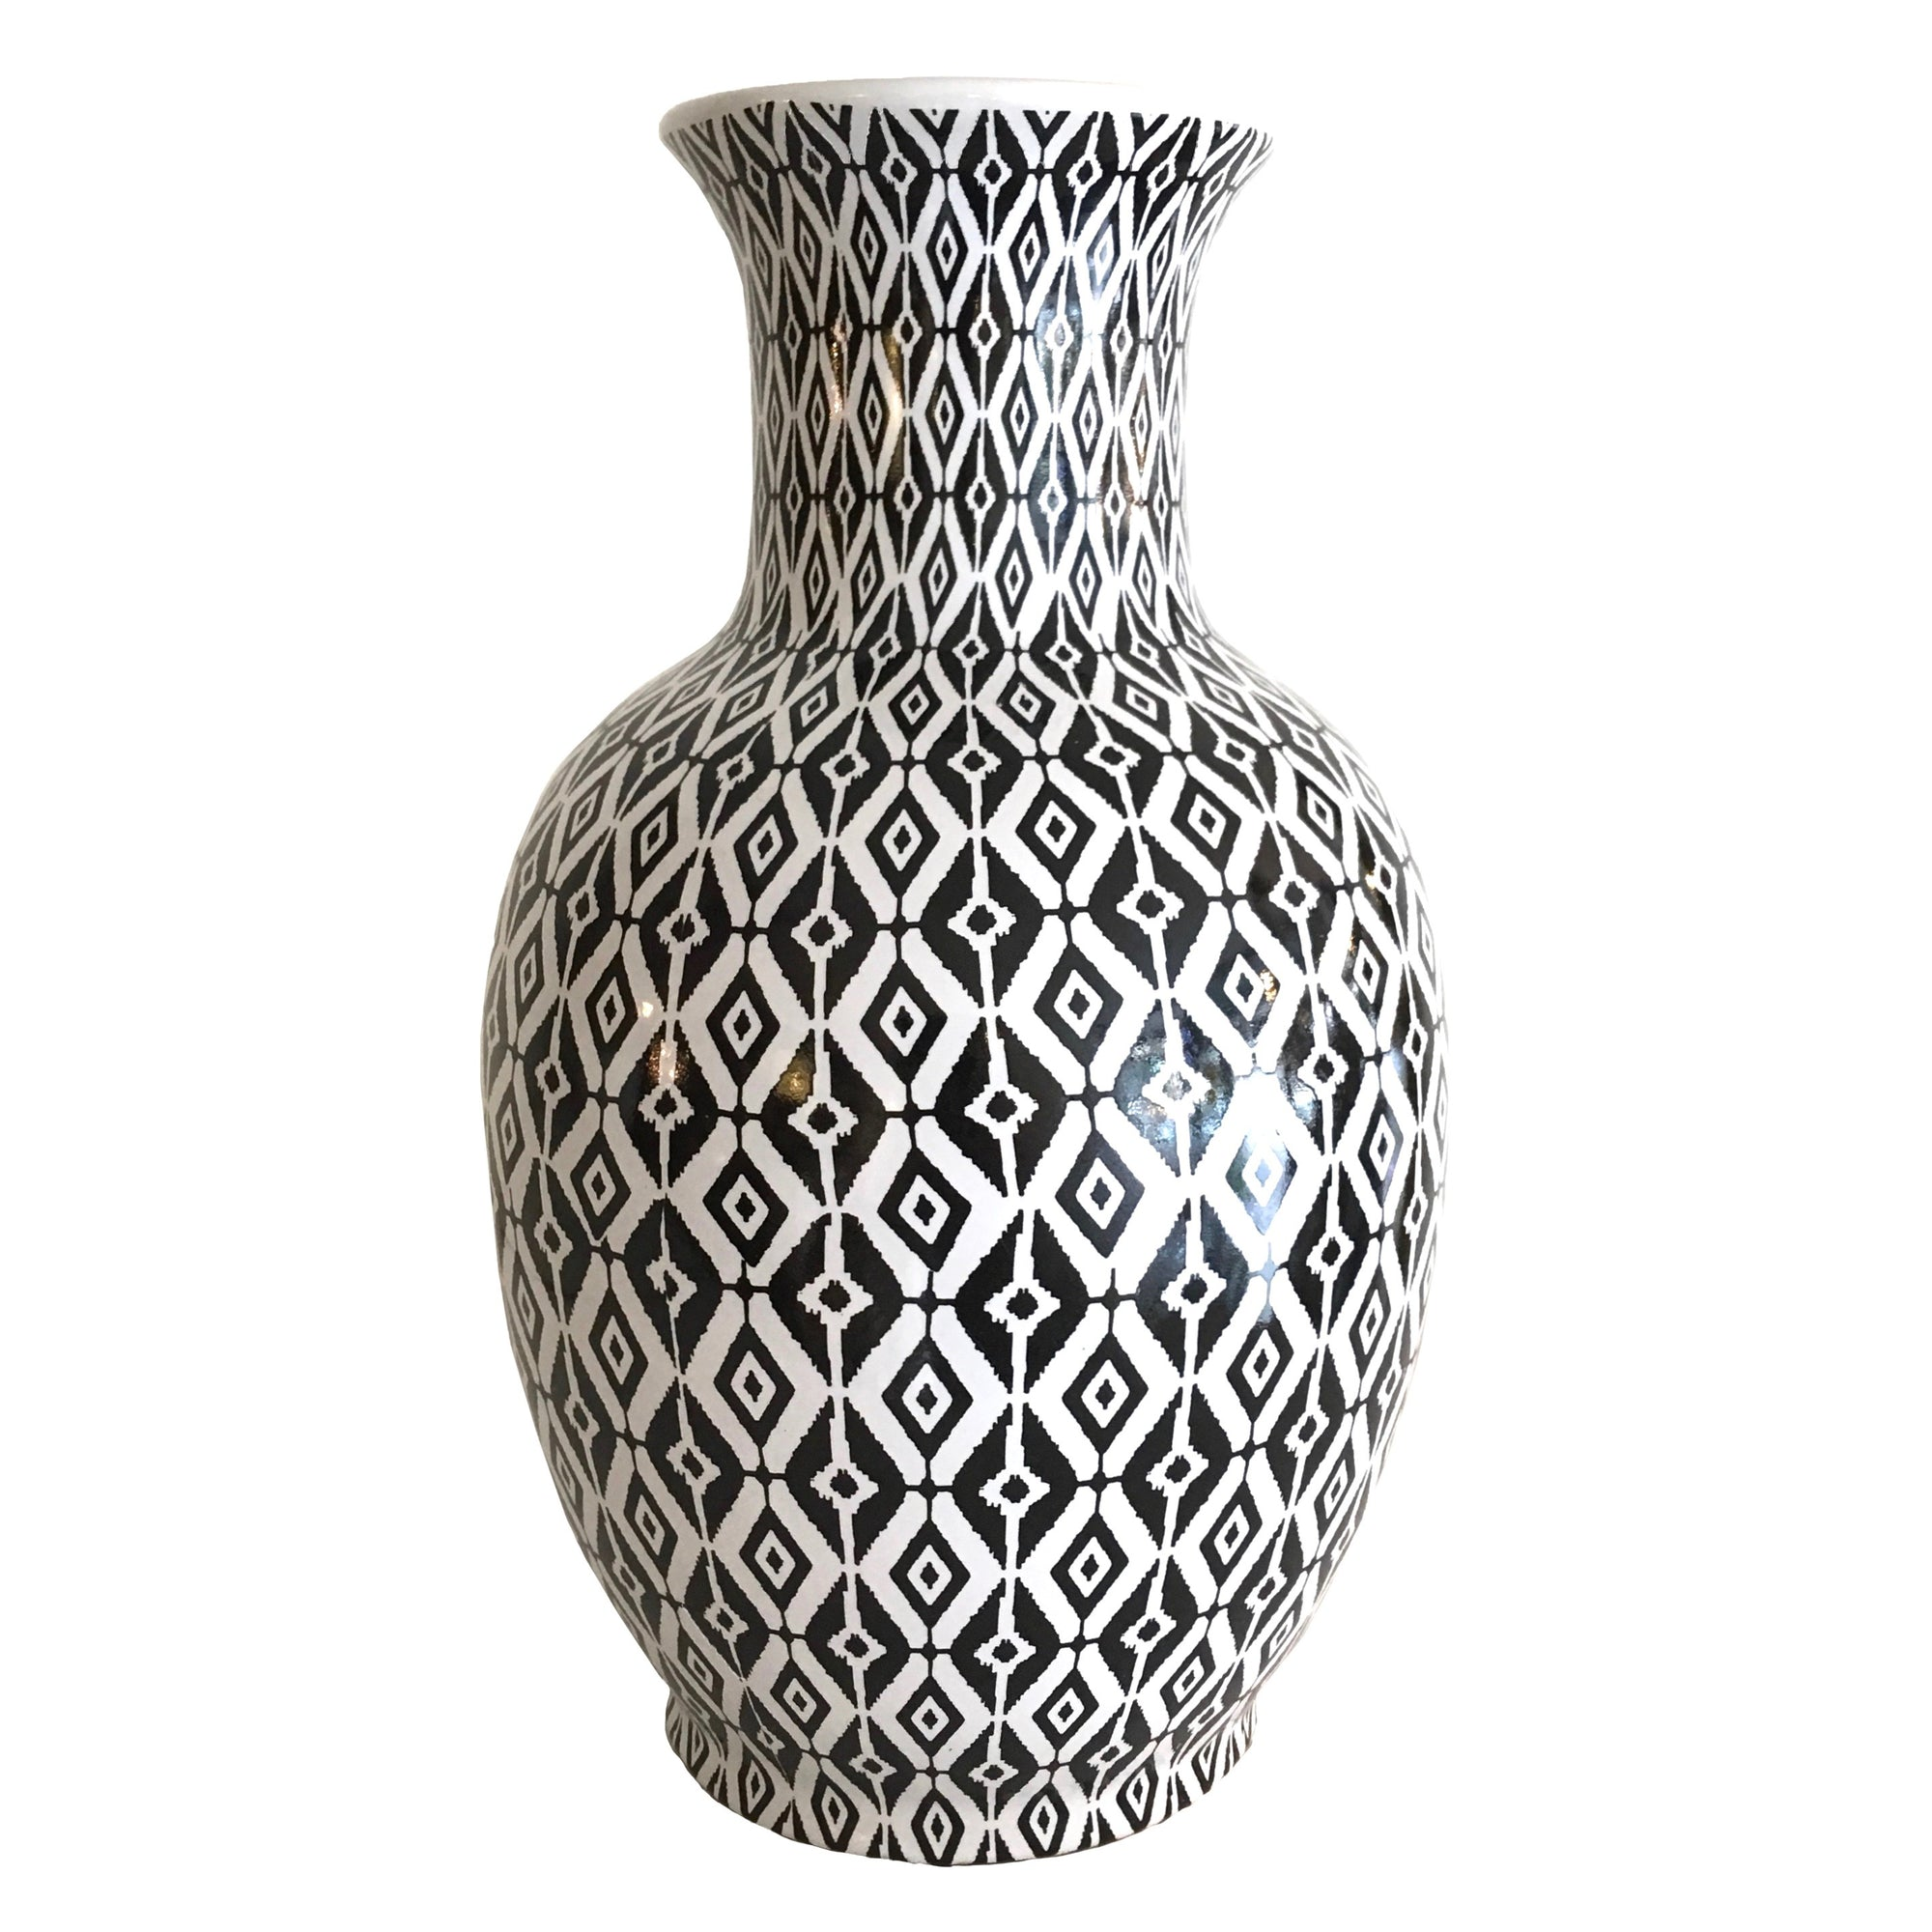 Black and White Geometric Vase